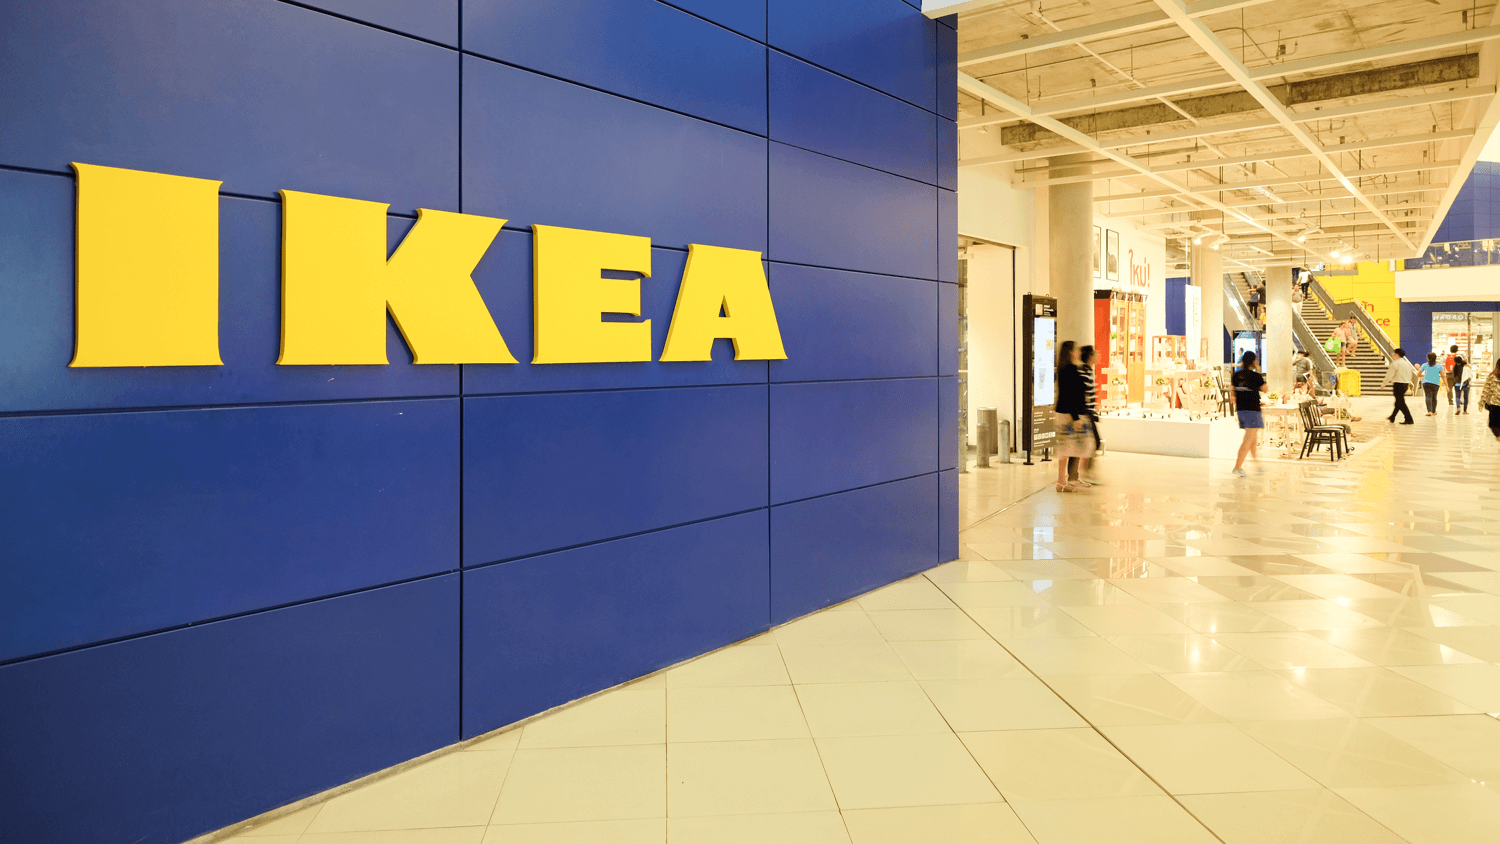 Ikea Small Stores: A Win for Retailers?